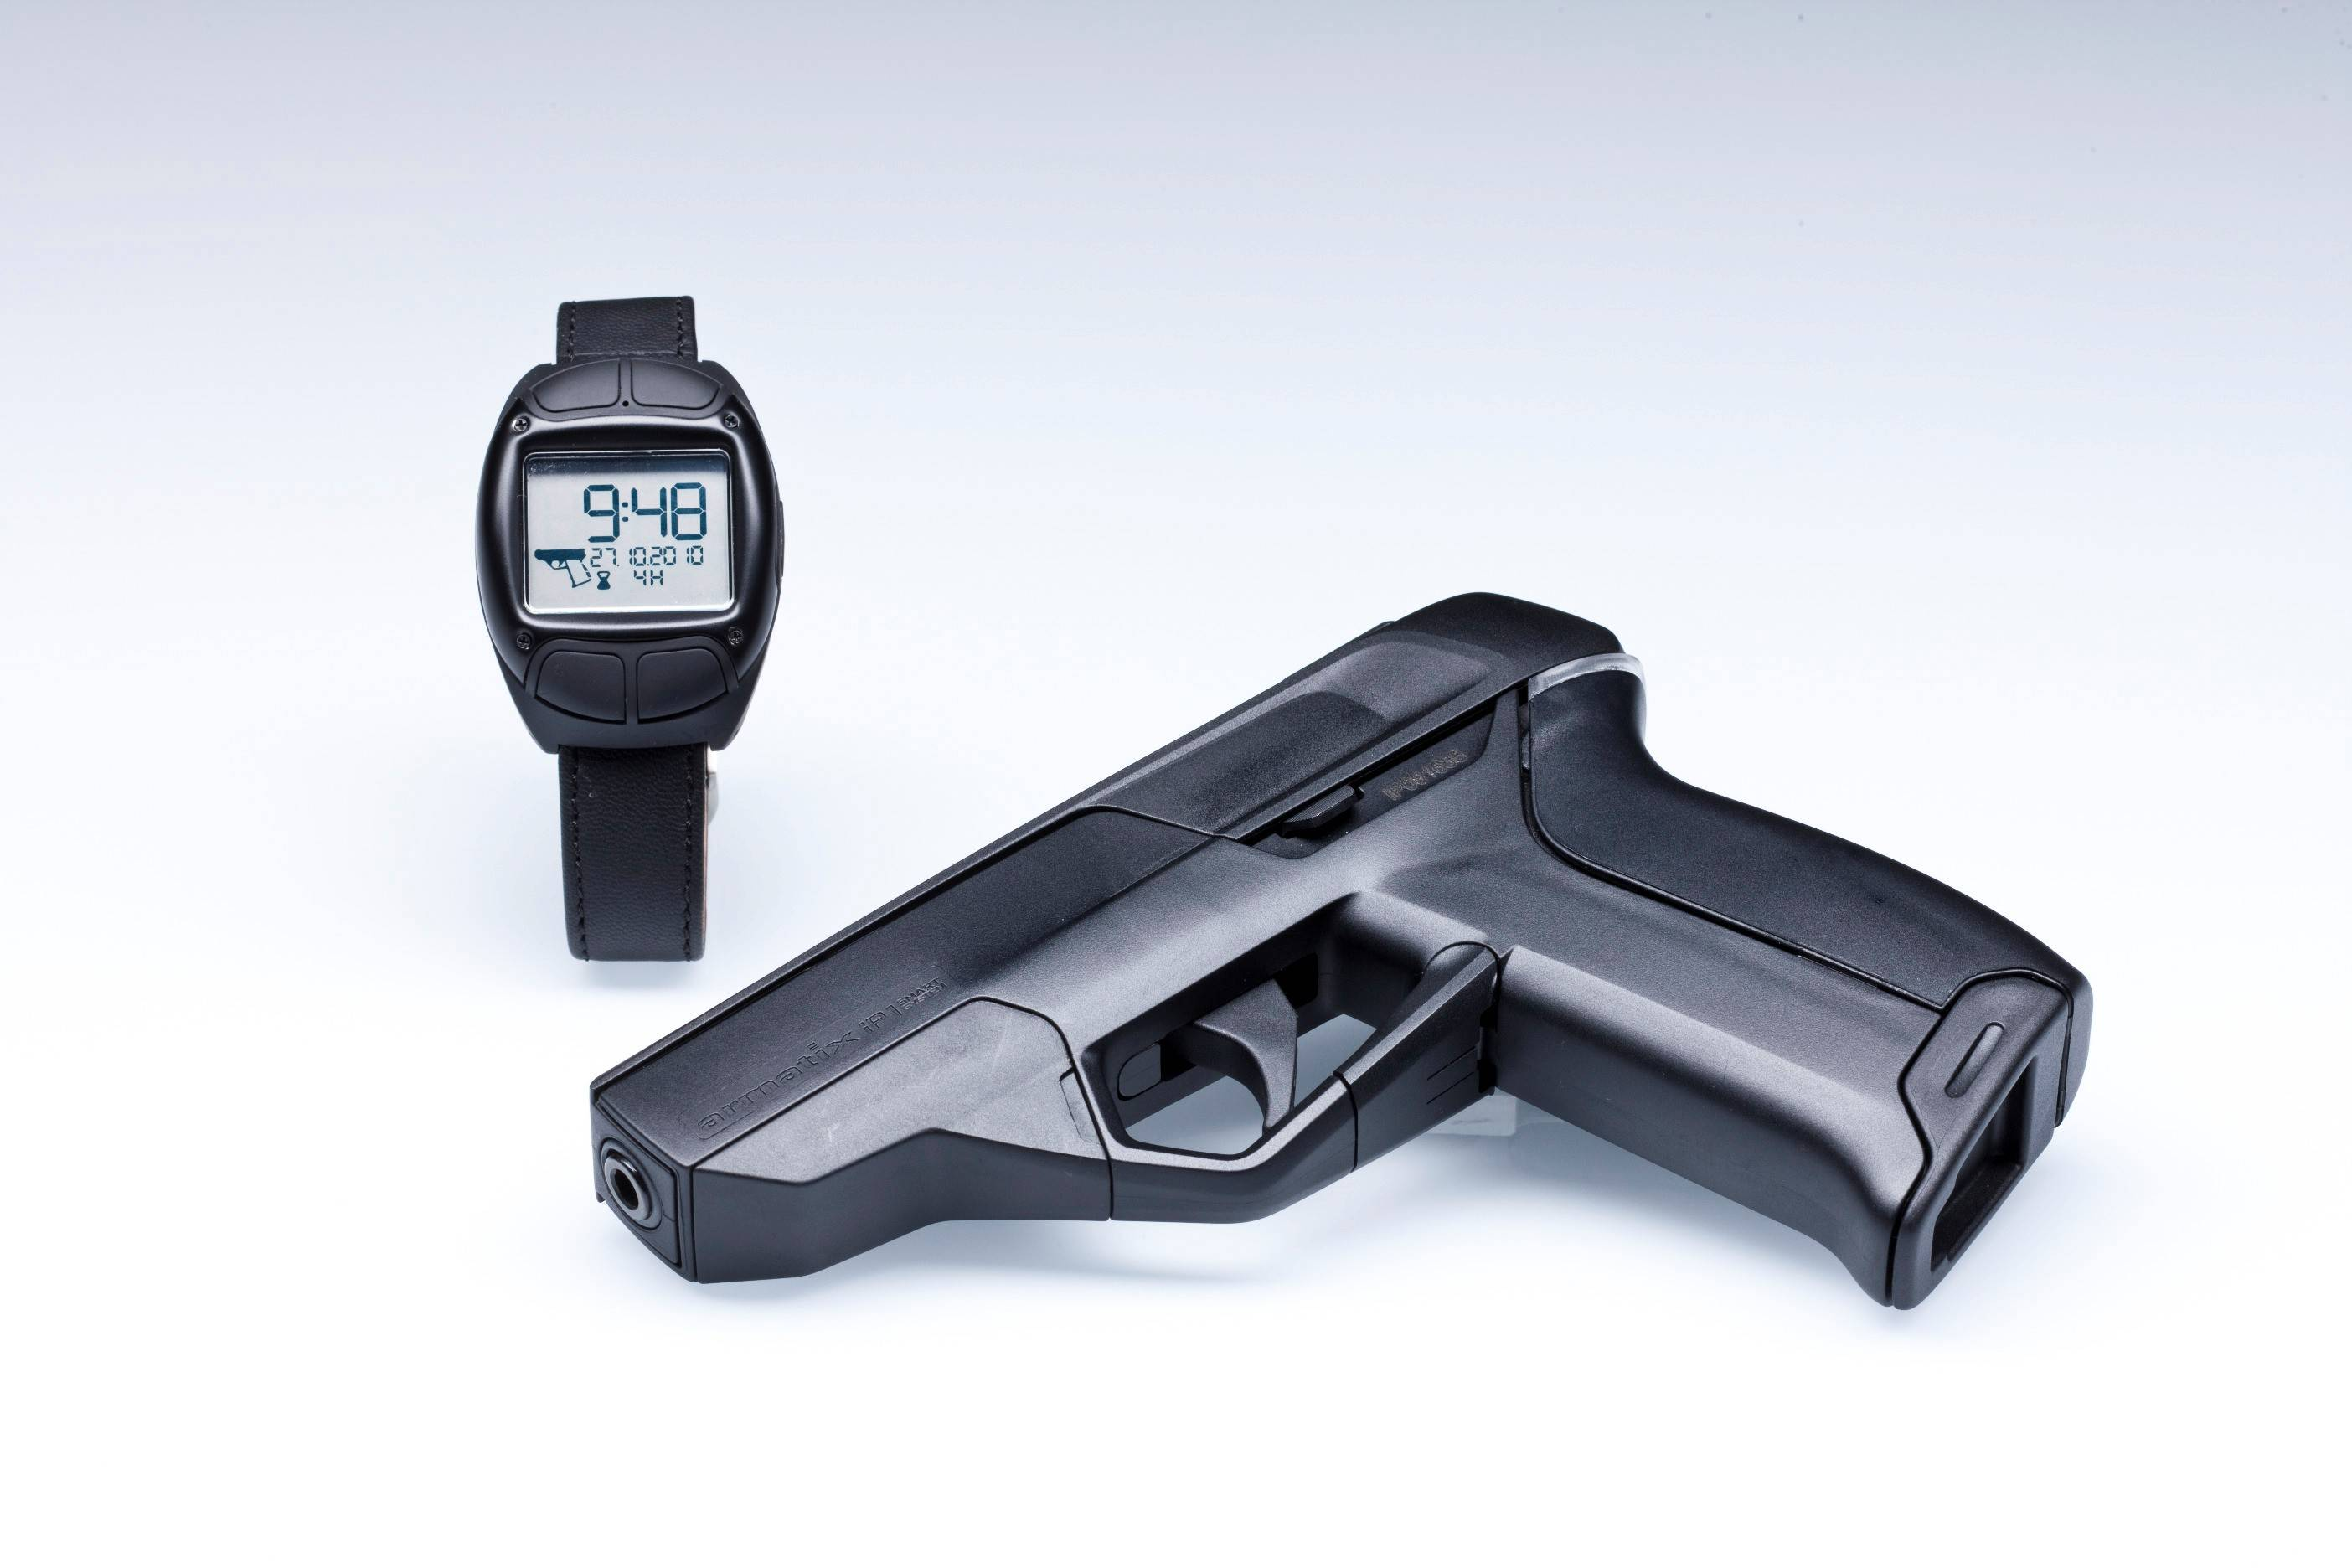 The Armatix iP1 pistol and the iW1 active RFID watch are shown in this photo provided by the manufacturer. The Armatix Smart System consists of a radio-controlled watch that is responsible for gun access and use. A Smart System gun will only shoot if it is within range of the watch. Illustrates GUNS (category a), by Michael S. Rosenwald (c) 2014, The Washington Post. Moved Tuesday, Feb. 18, 2014. (MUST CREDIT: Armatix)